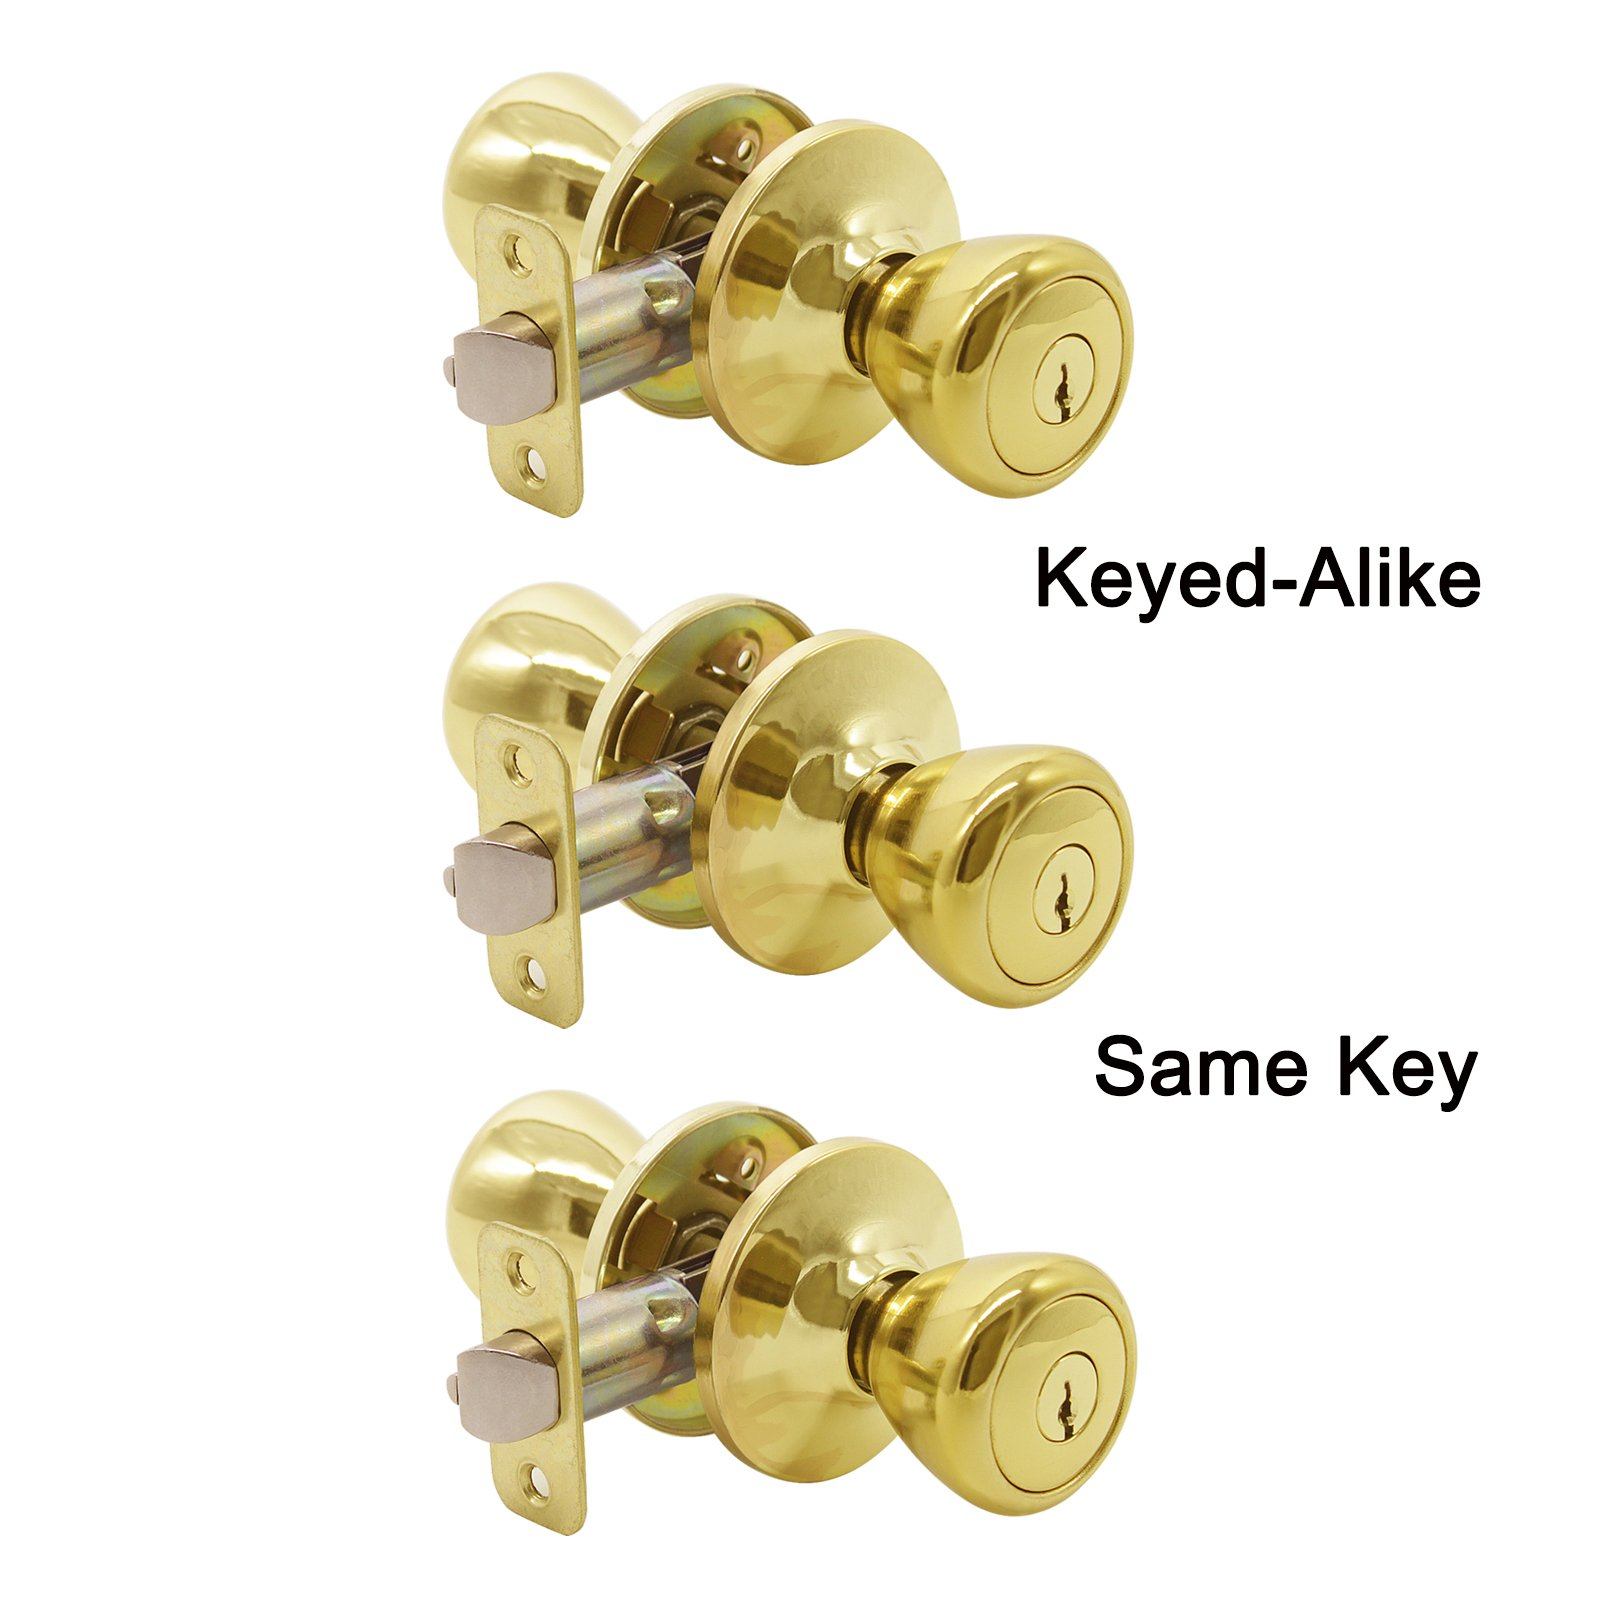 Gobrico Tulip-style Keyed-alike Exterior Door Hardware Entrance Locksets Knob, Polished Brass Same Keys 3Pack